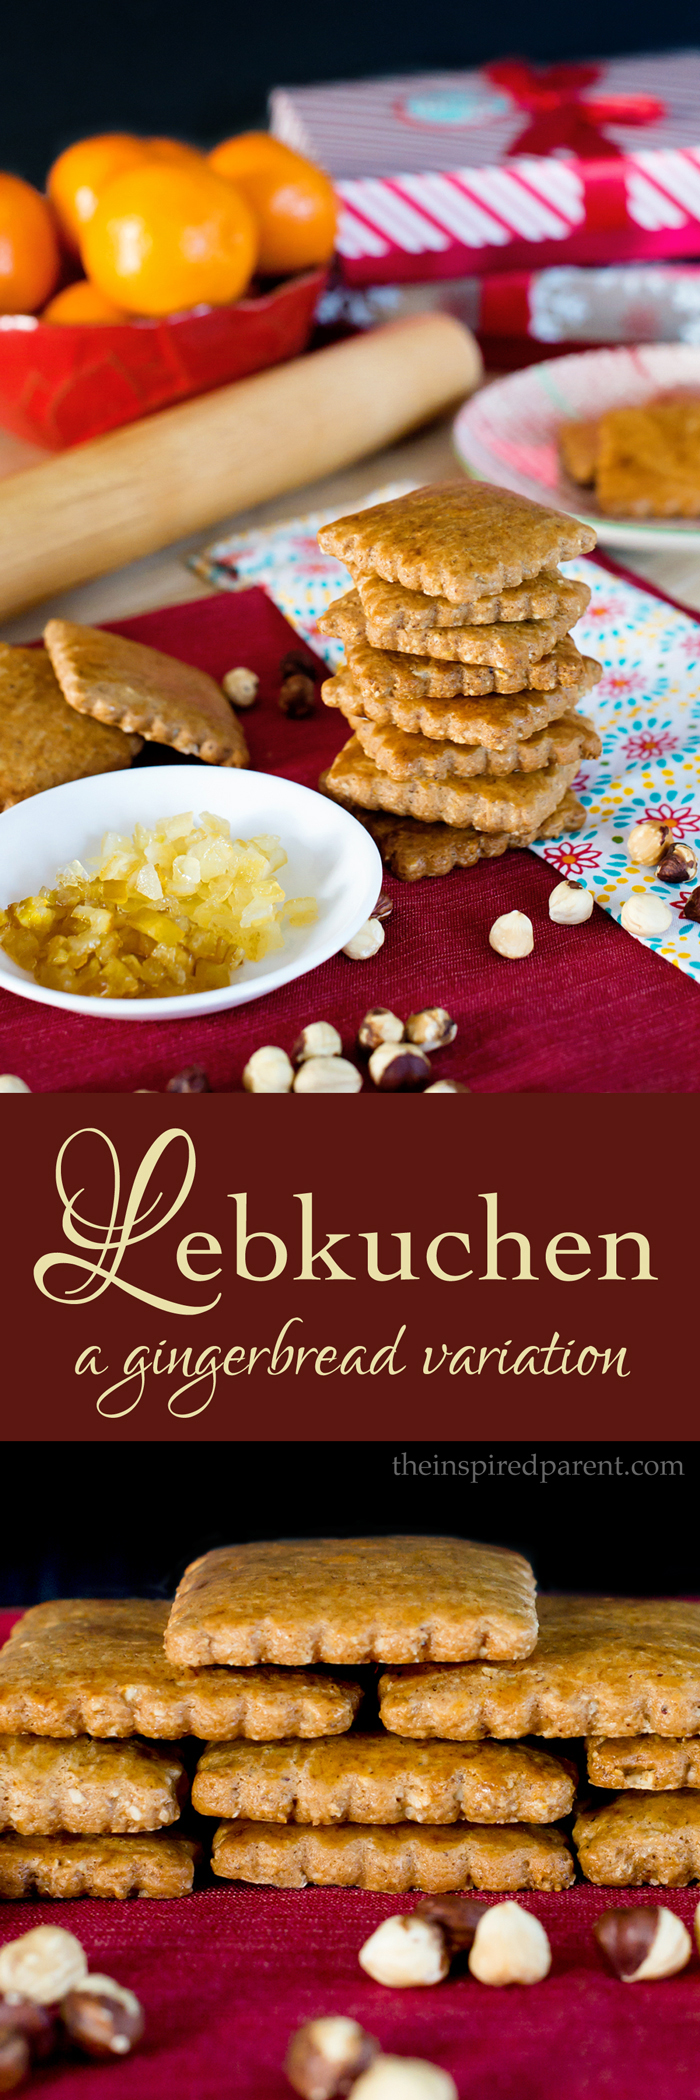 Lebkuchen | theinspiredparent.com